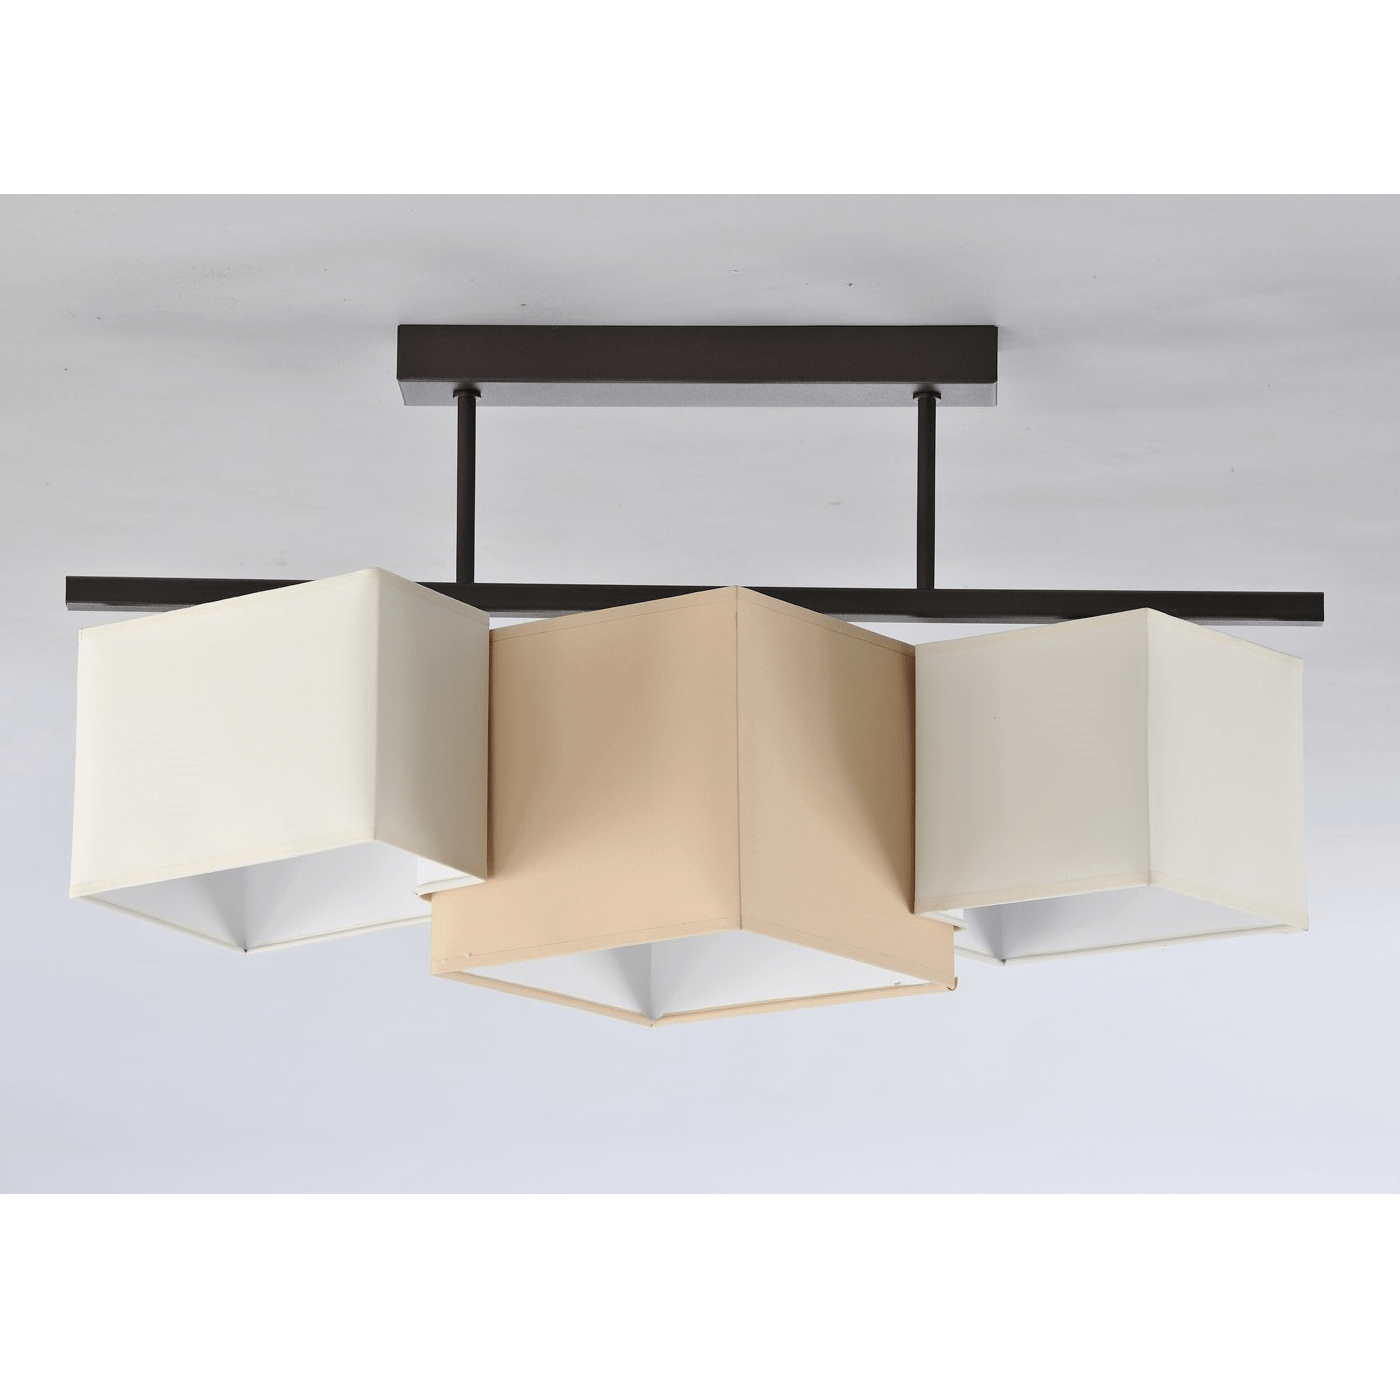 Ceiling lamp PUZZLE BELKA No. 3771